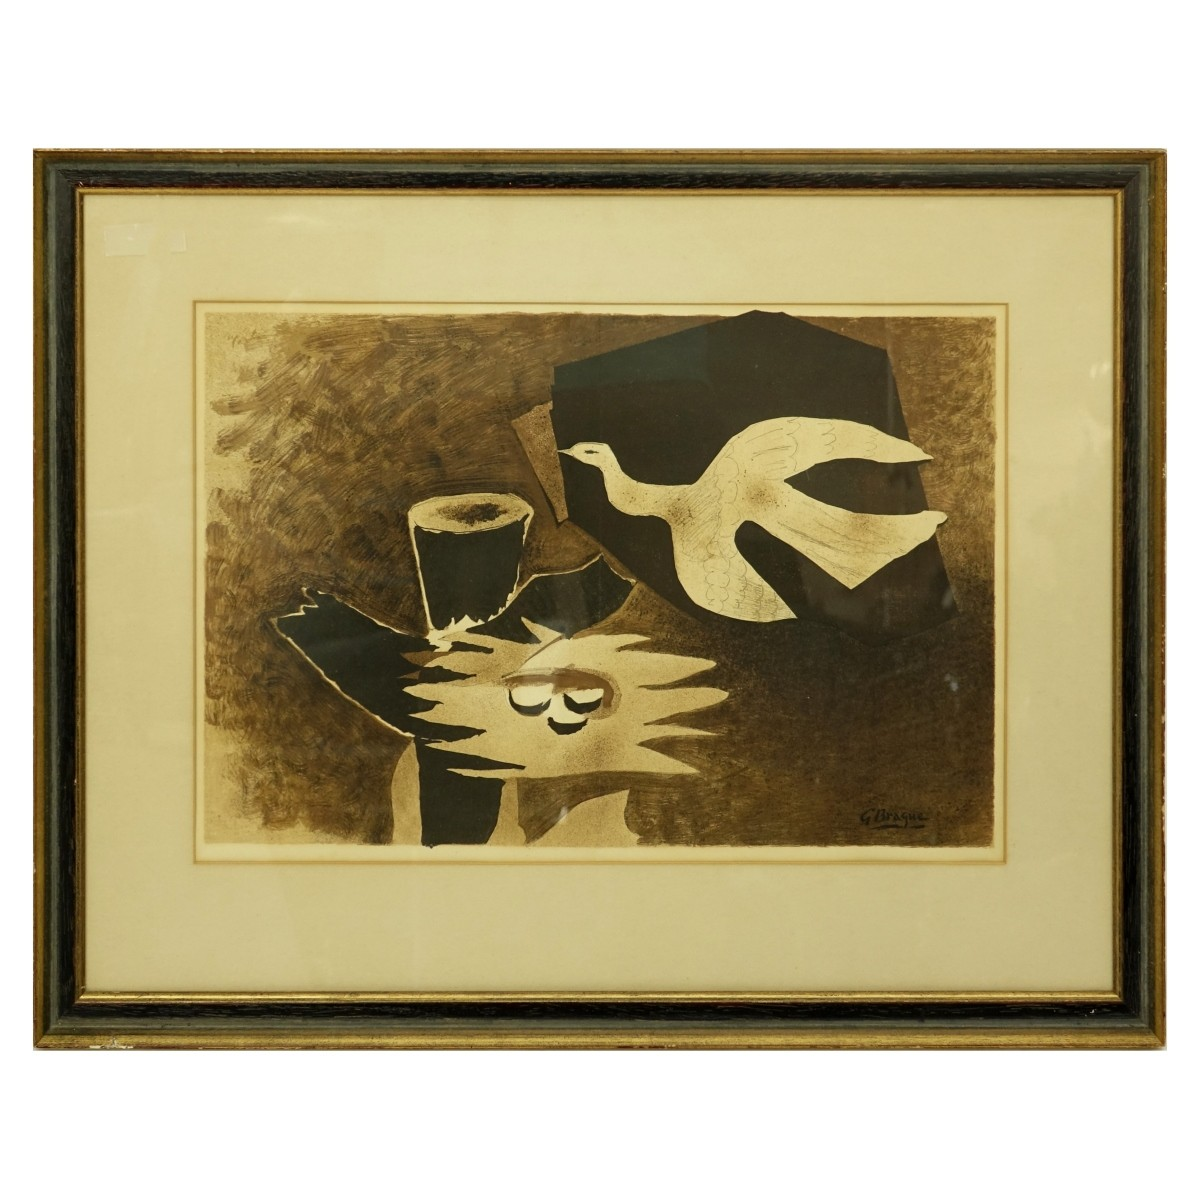 Georges Braque (1882 - 1963) Color Lithograph